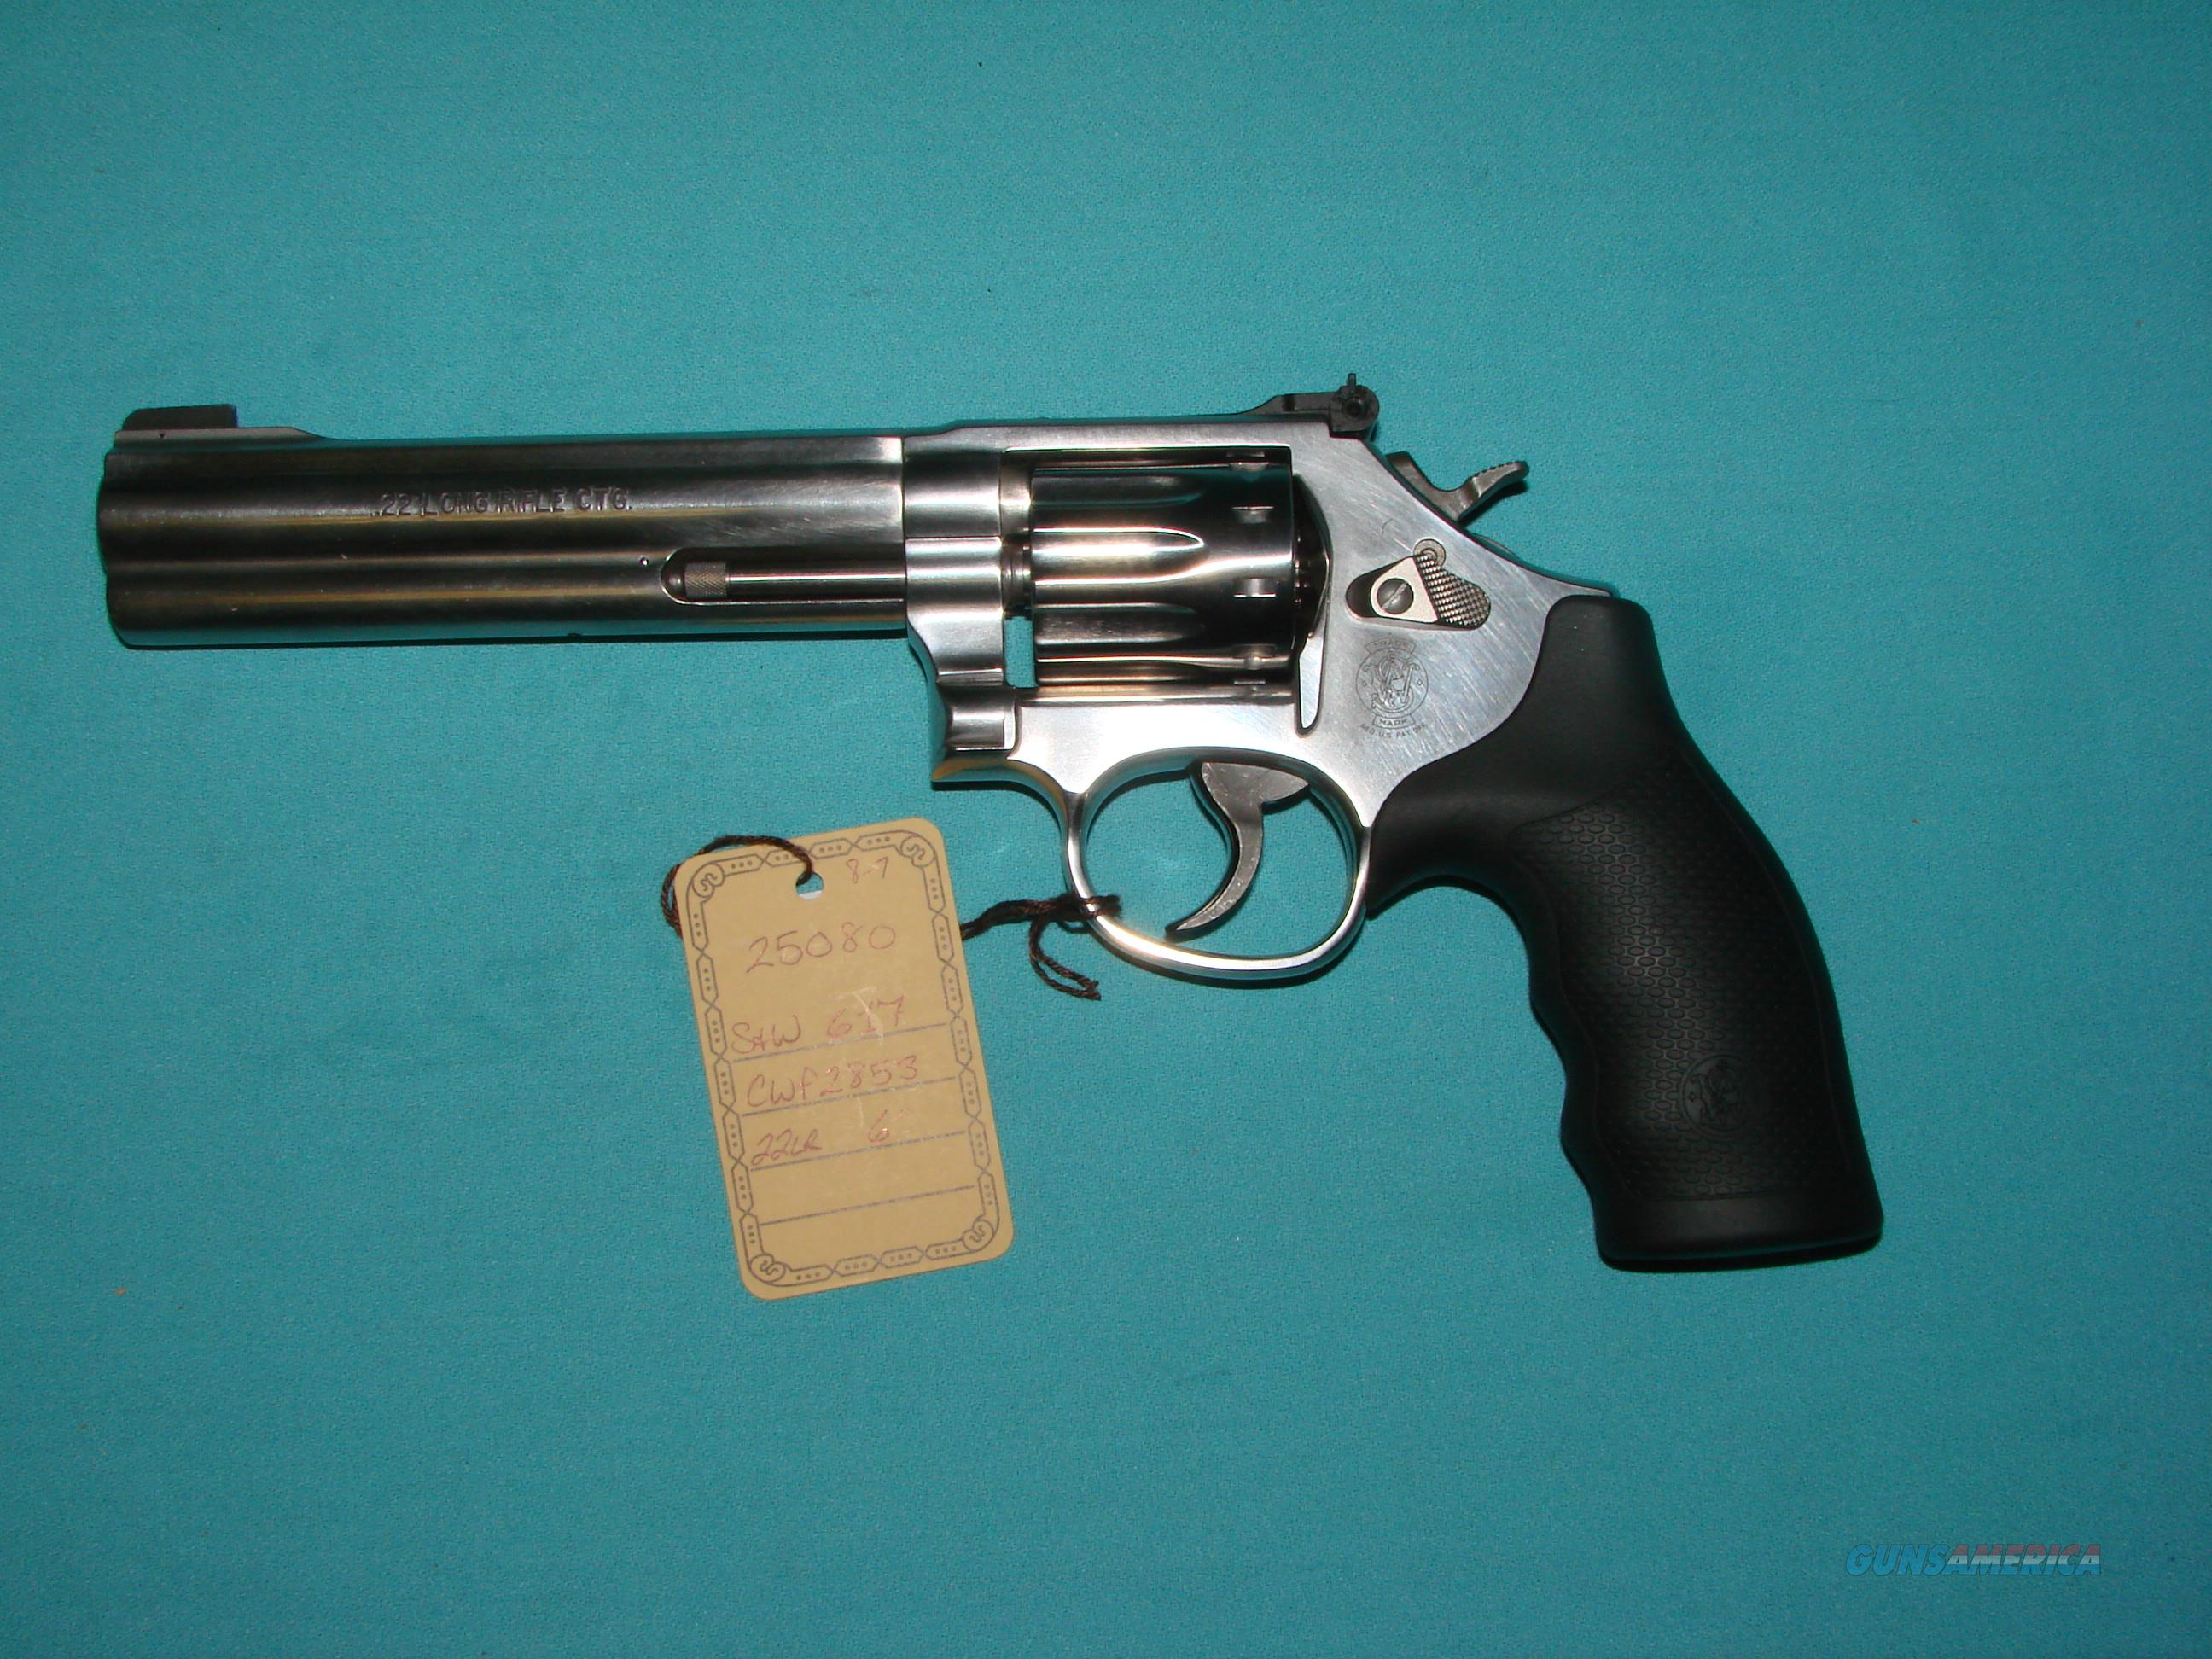 S&W 617-6 22LR  Guns > Pistols > Smith & Wesson Revolvers > Full Frame Revolver